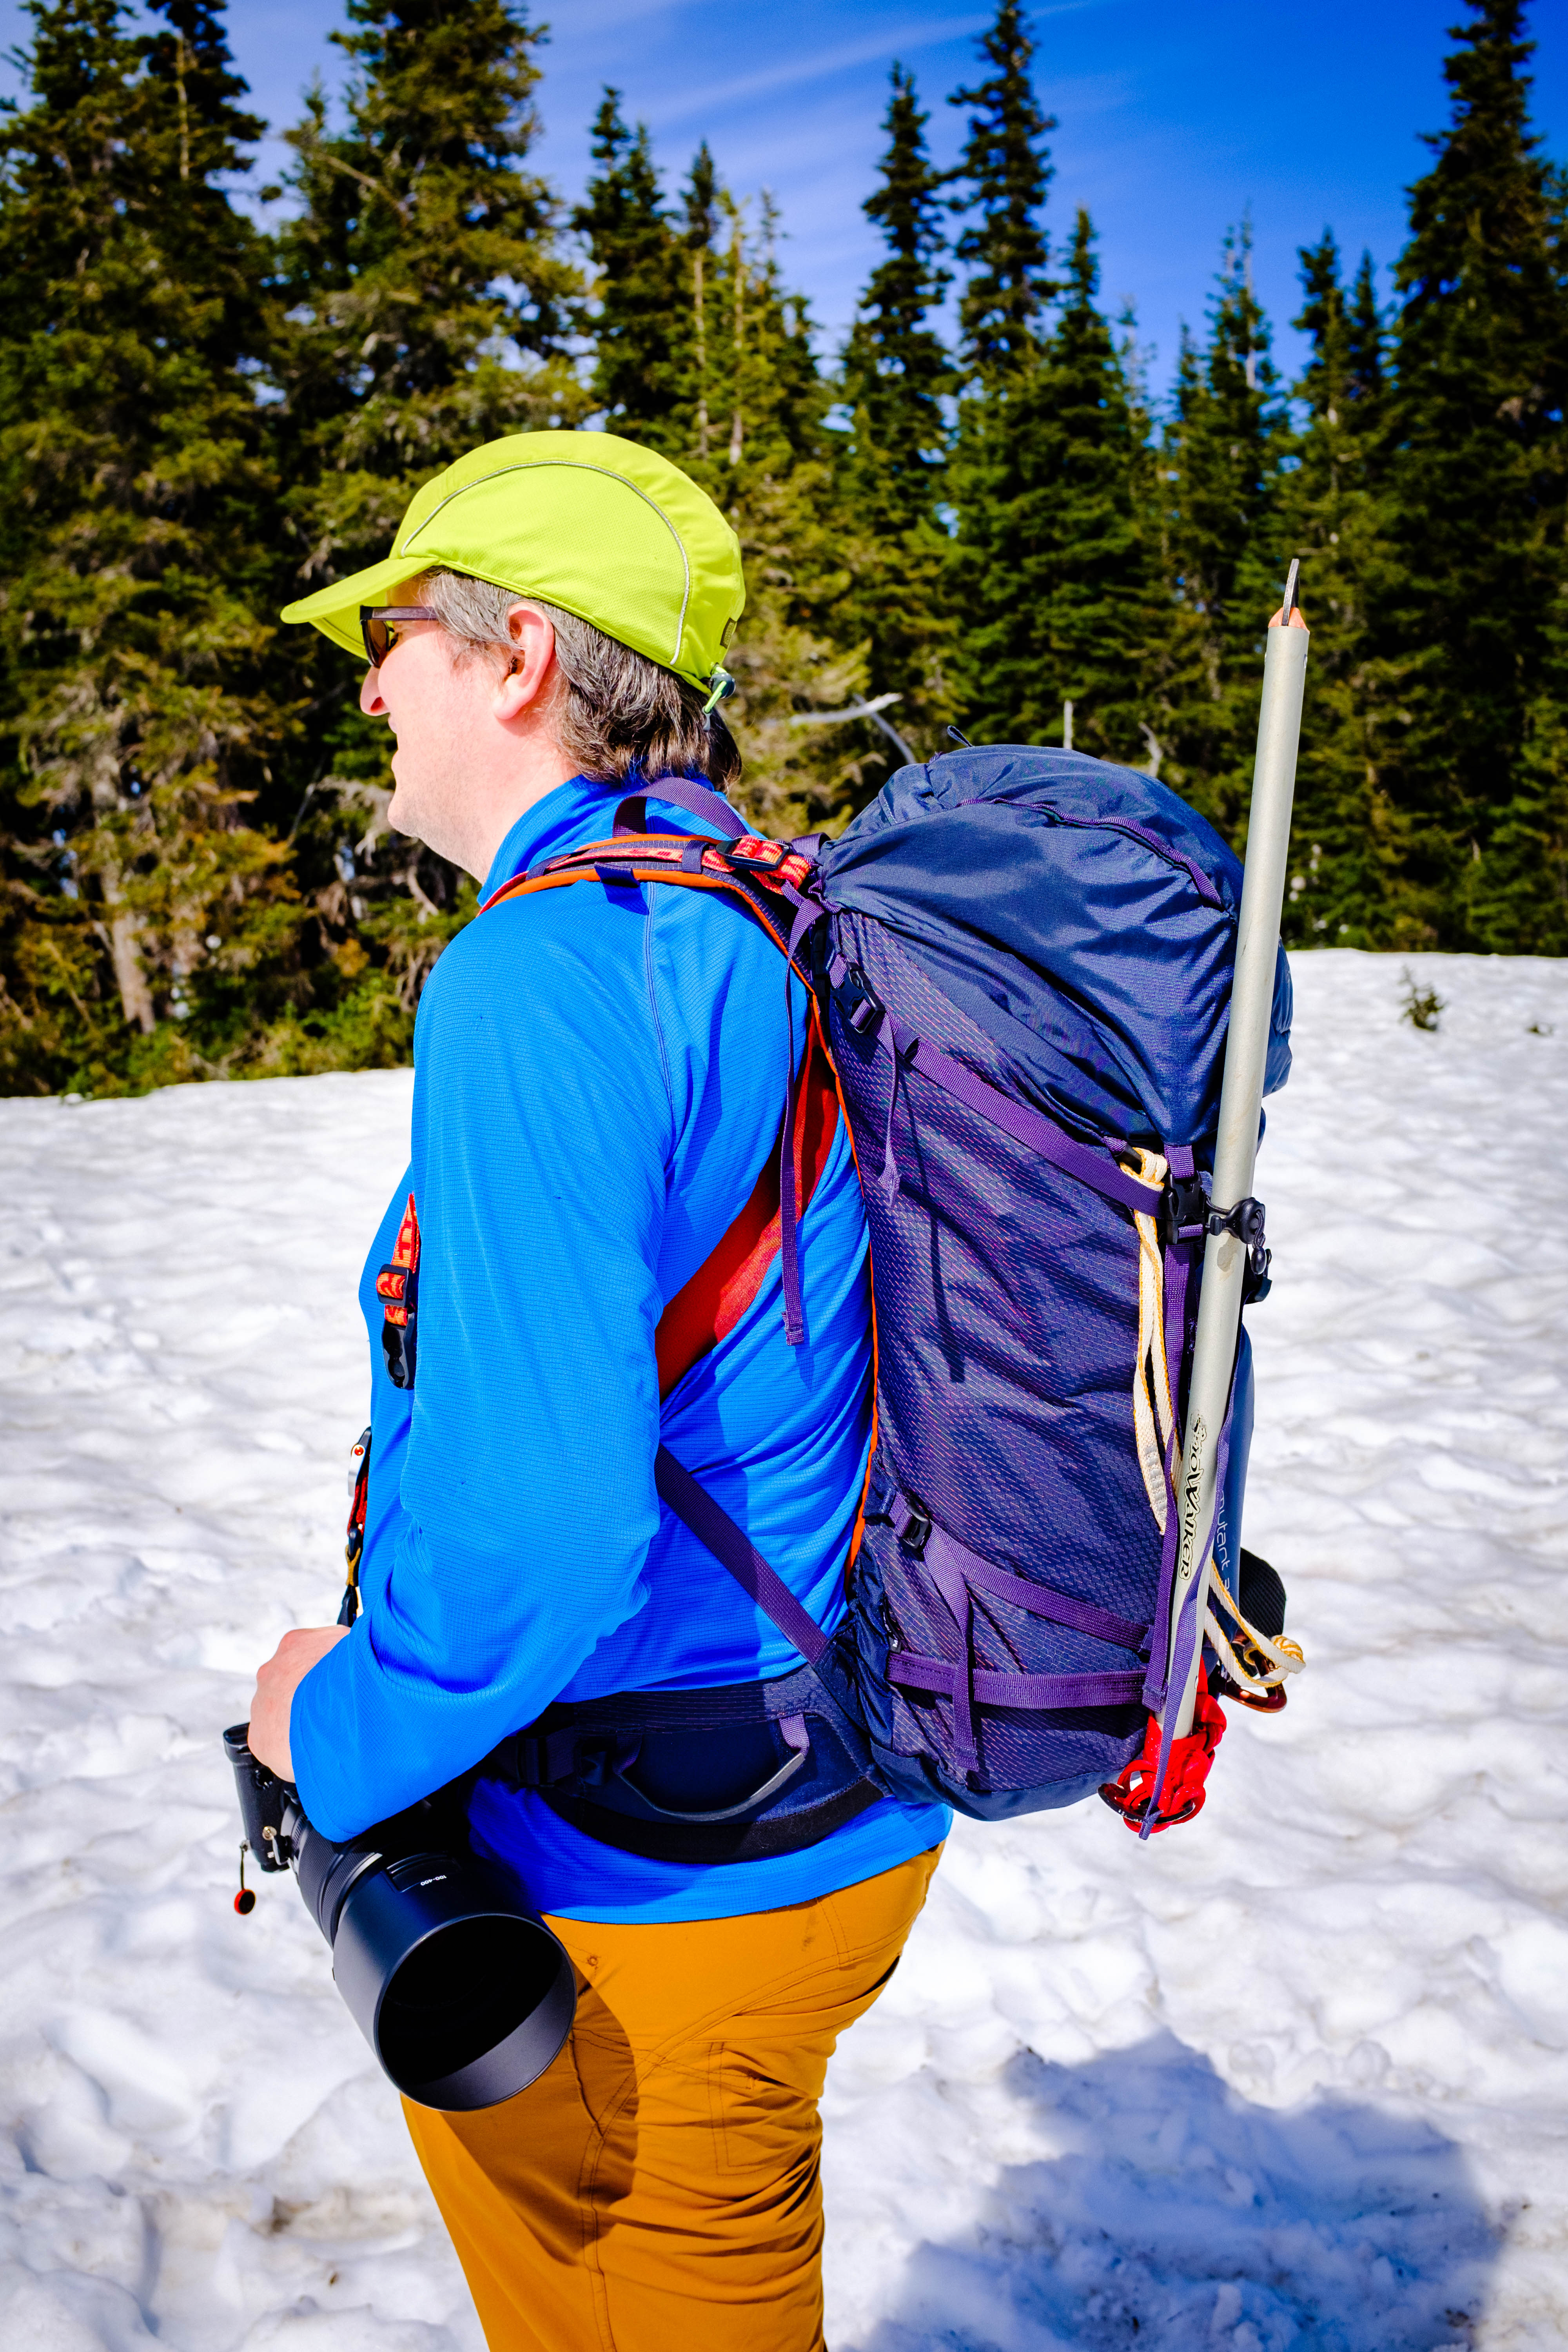 Osprey Mutant 38 mountaineering pack worn by the author on a sunny spring day in the mountains